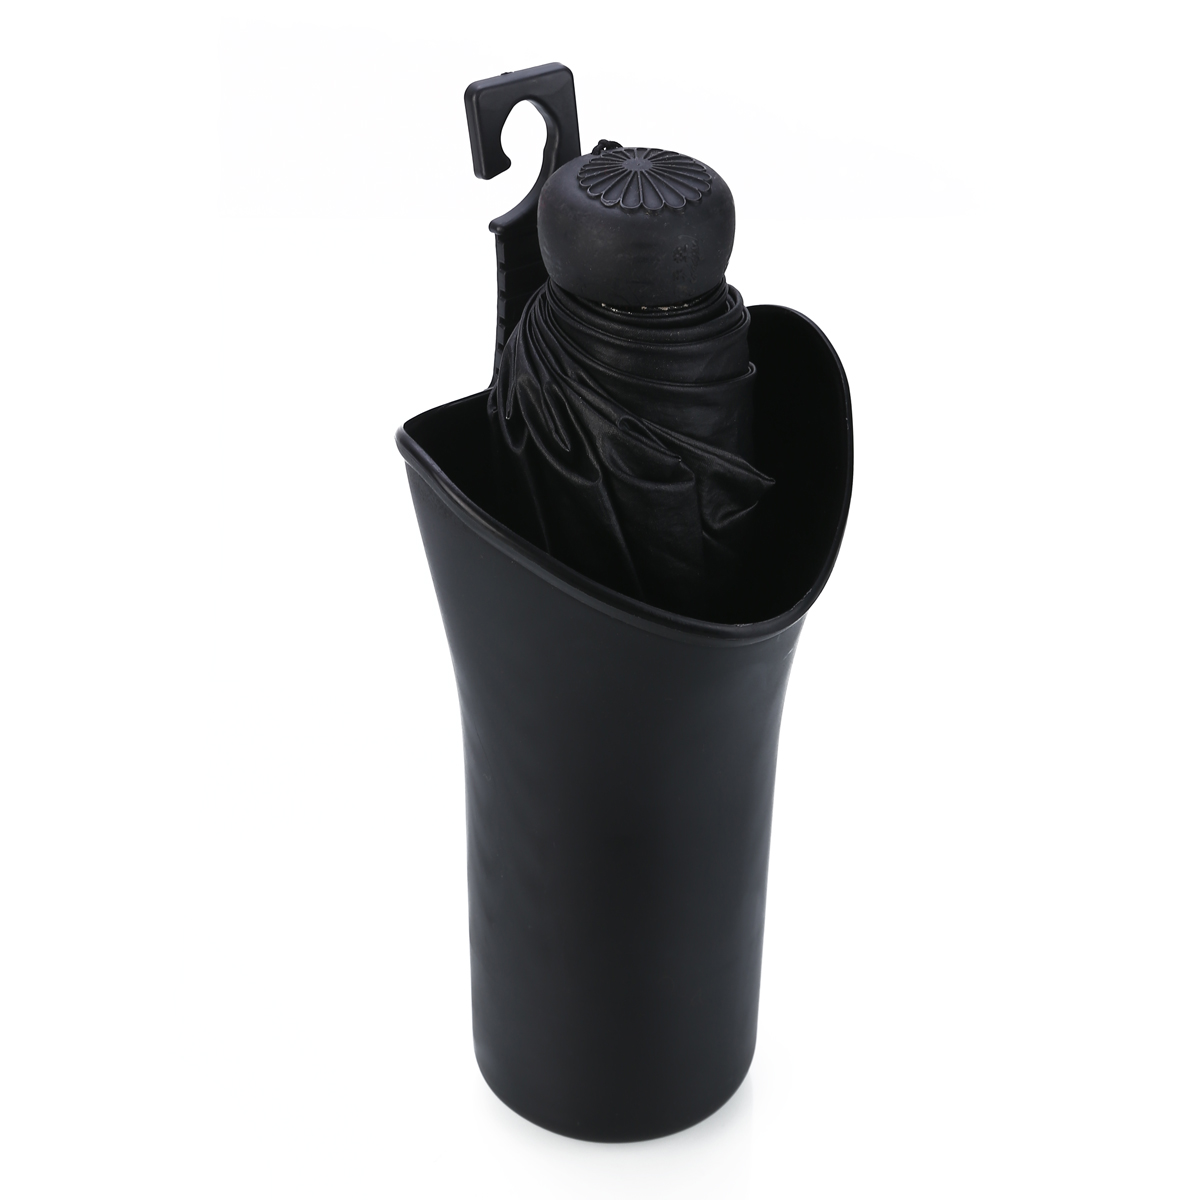 1pcs Car Styling Car Interior Umbrella Hanging Storage Box Barrel Trash Can Multifunctional Car Interior Accessories